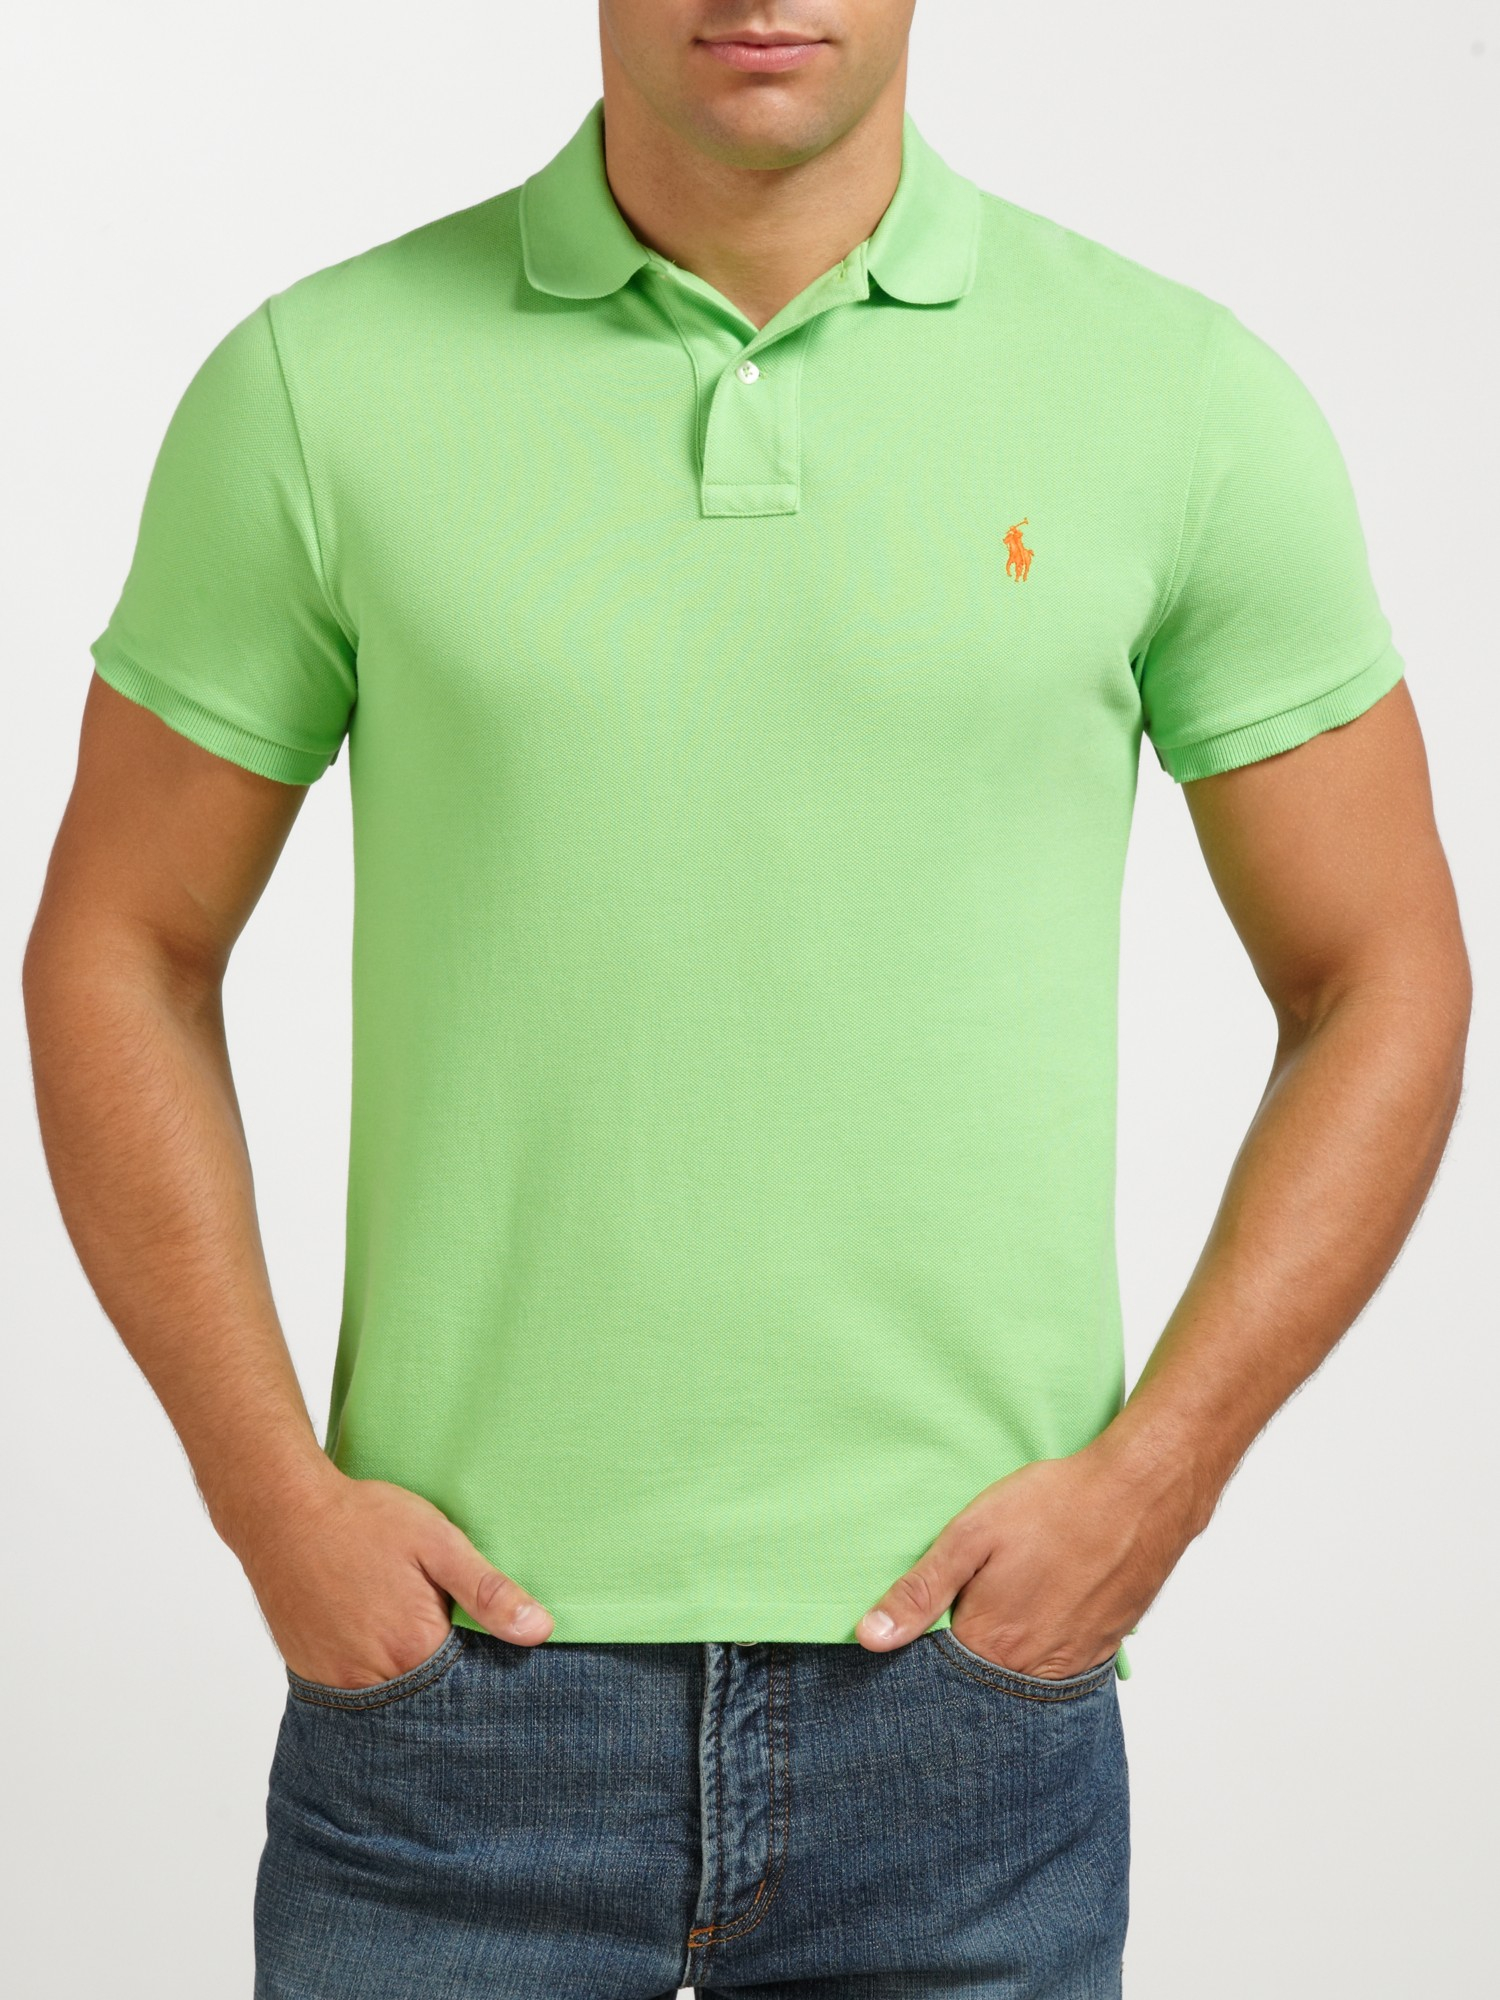 polo ralph lauren slim fit polo shirt in green for men lyst. Black Bedroom Furniture Sets. Home Design Ideas